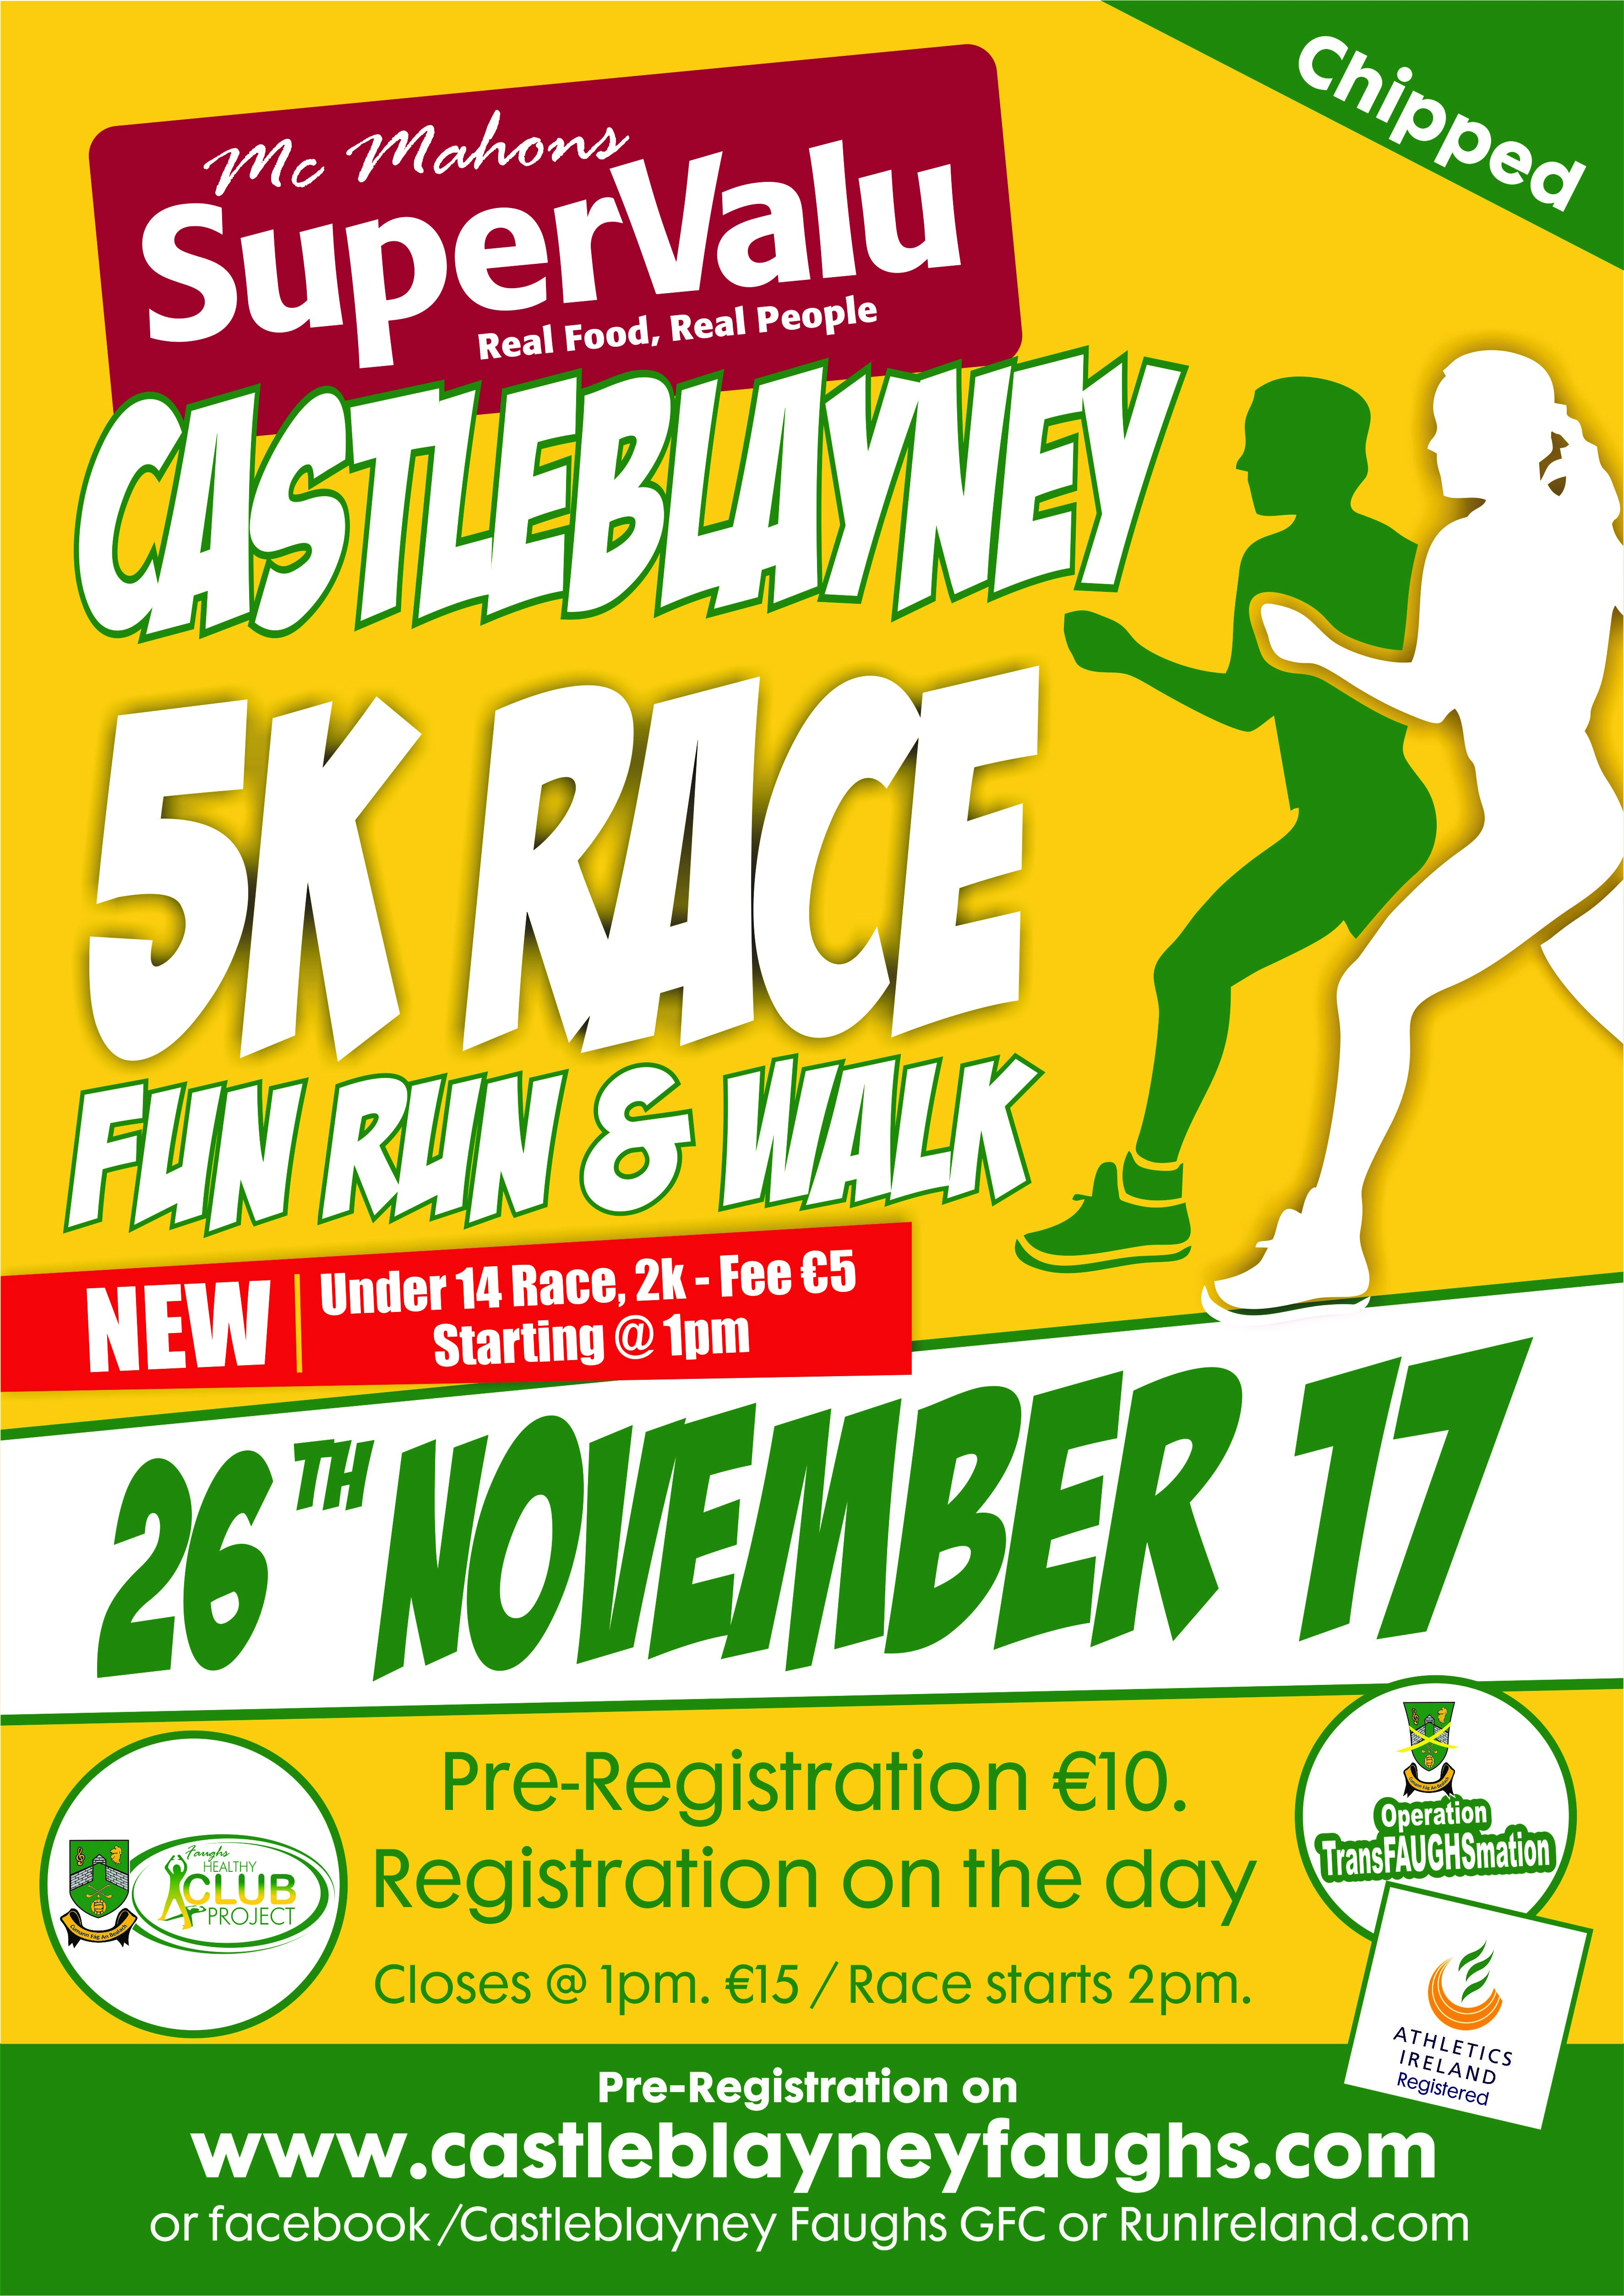 Supervalu Castleblayney 5K ready for the off this Sunday 26th of November